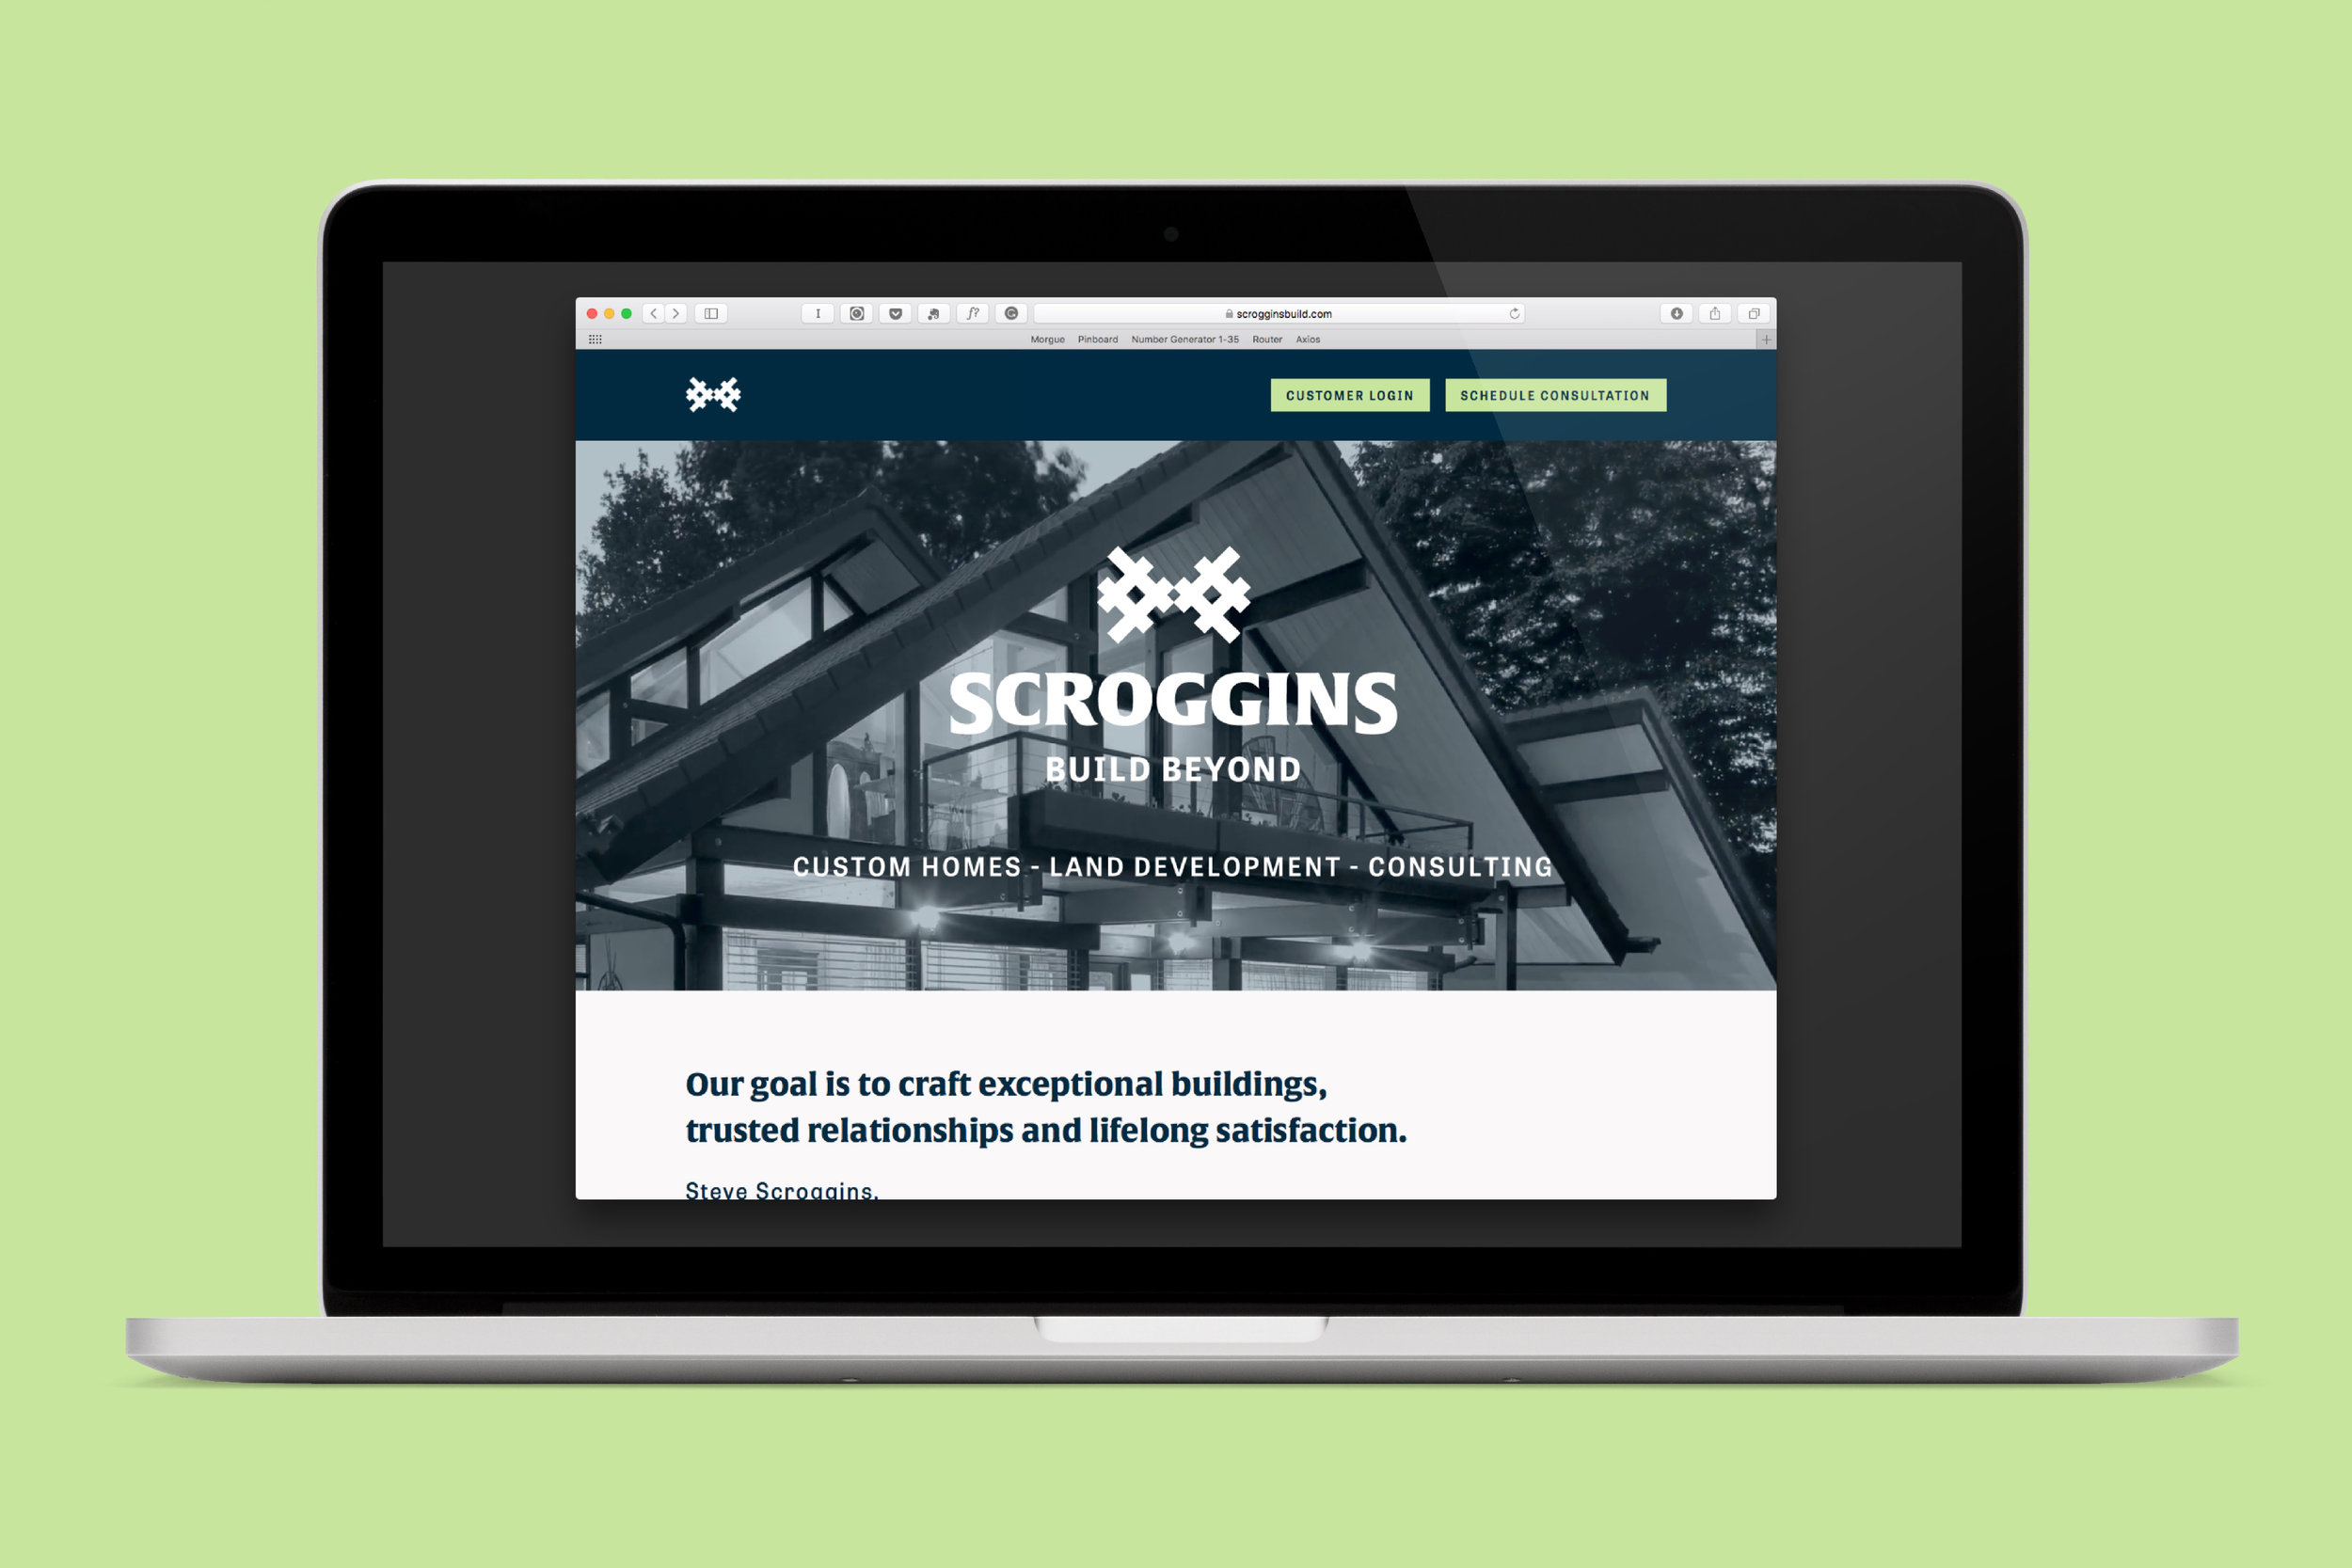 Single-page Squarespace page for Scroggins.